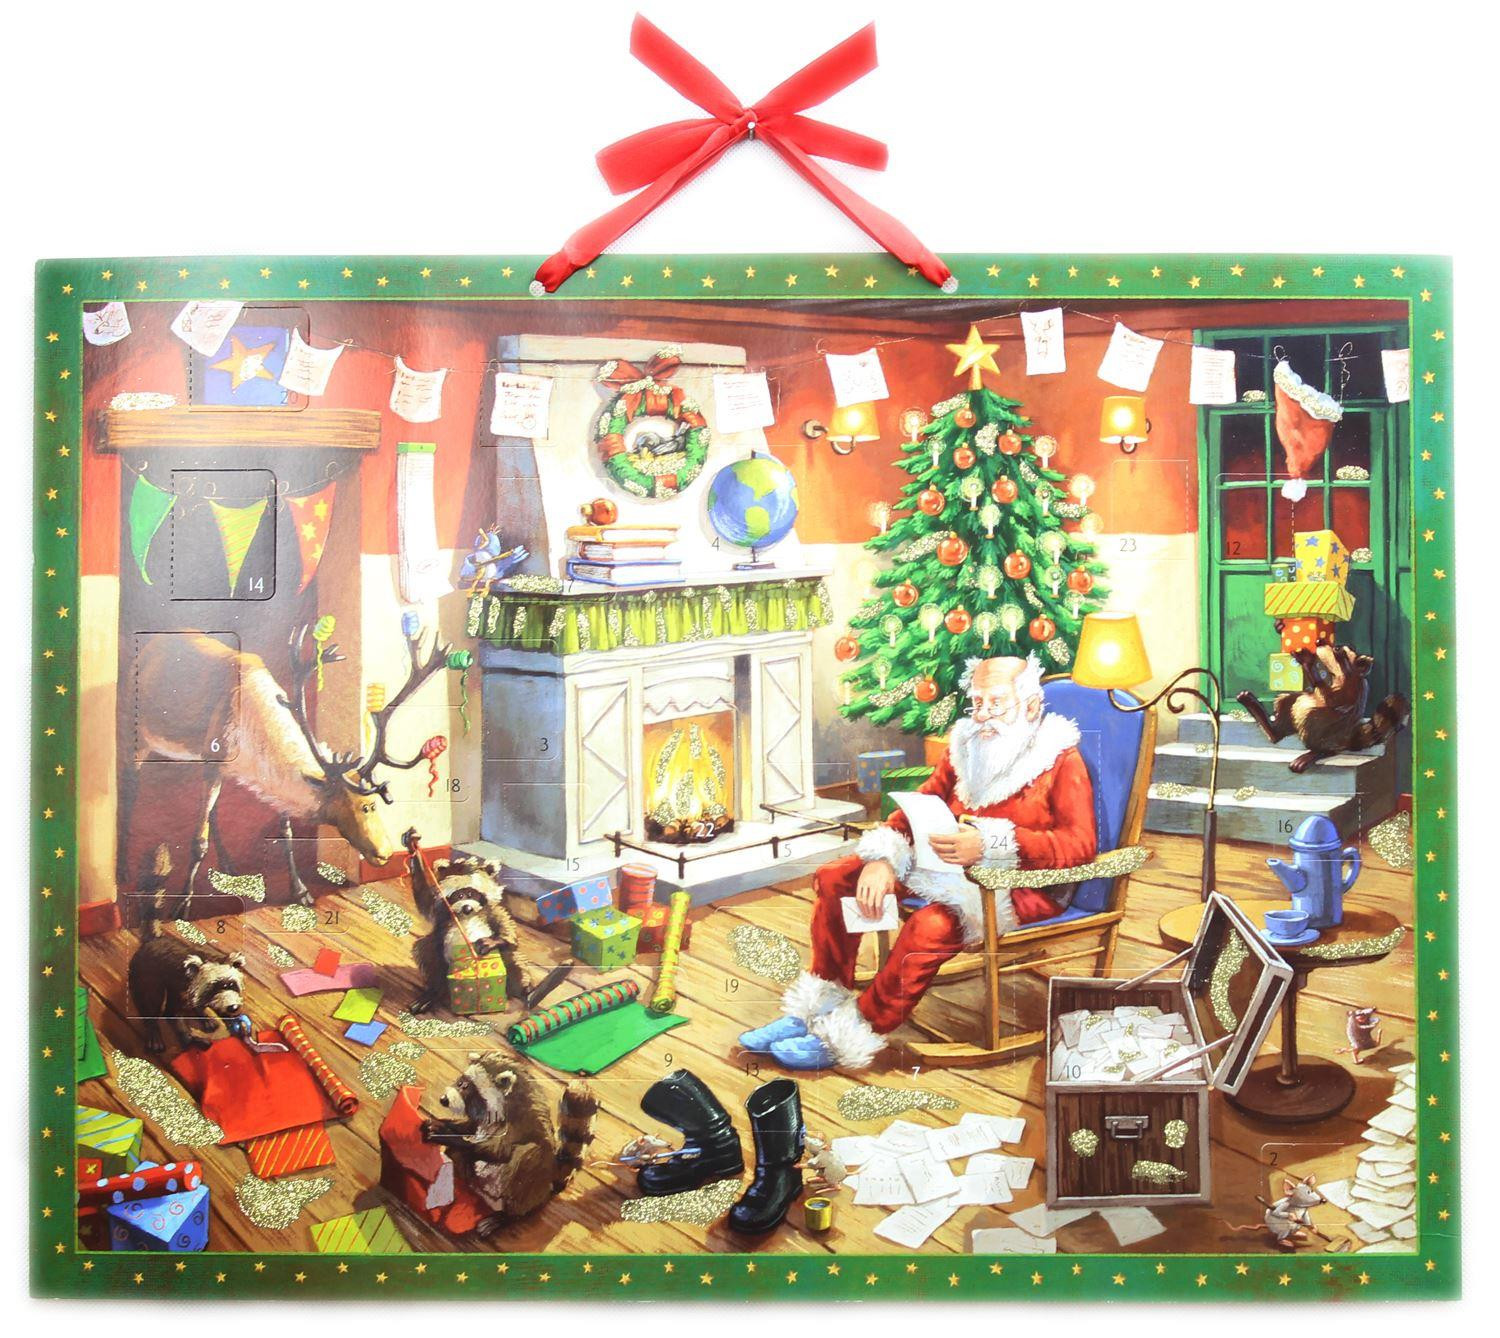 Deluxe Traditional Card Advent Calendar Large - Santas